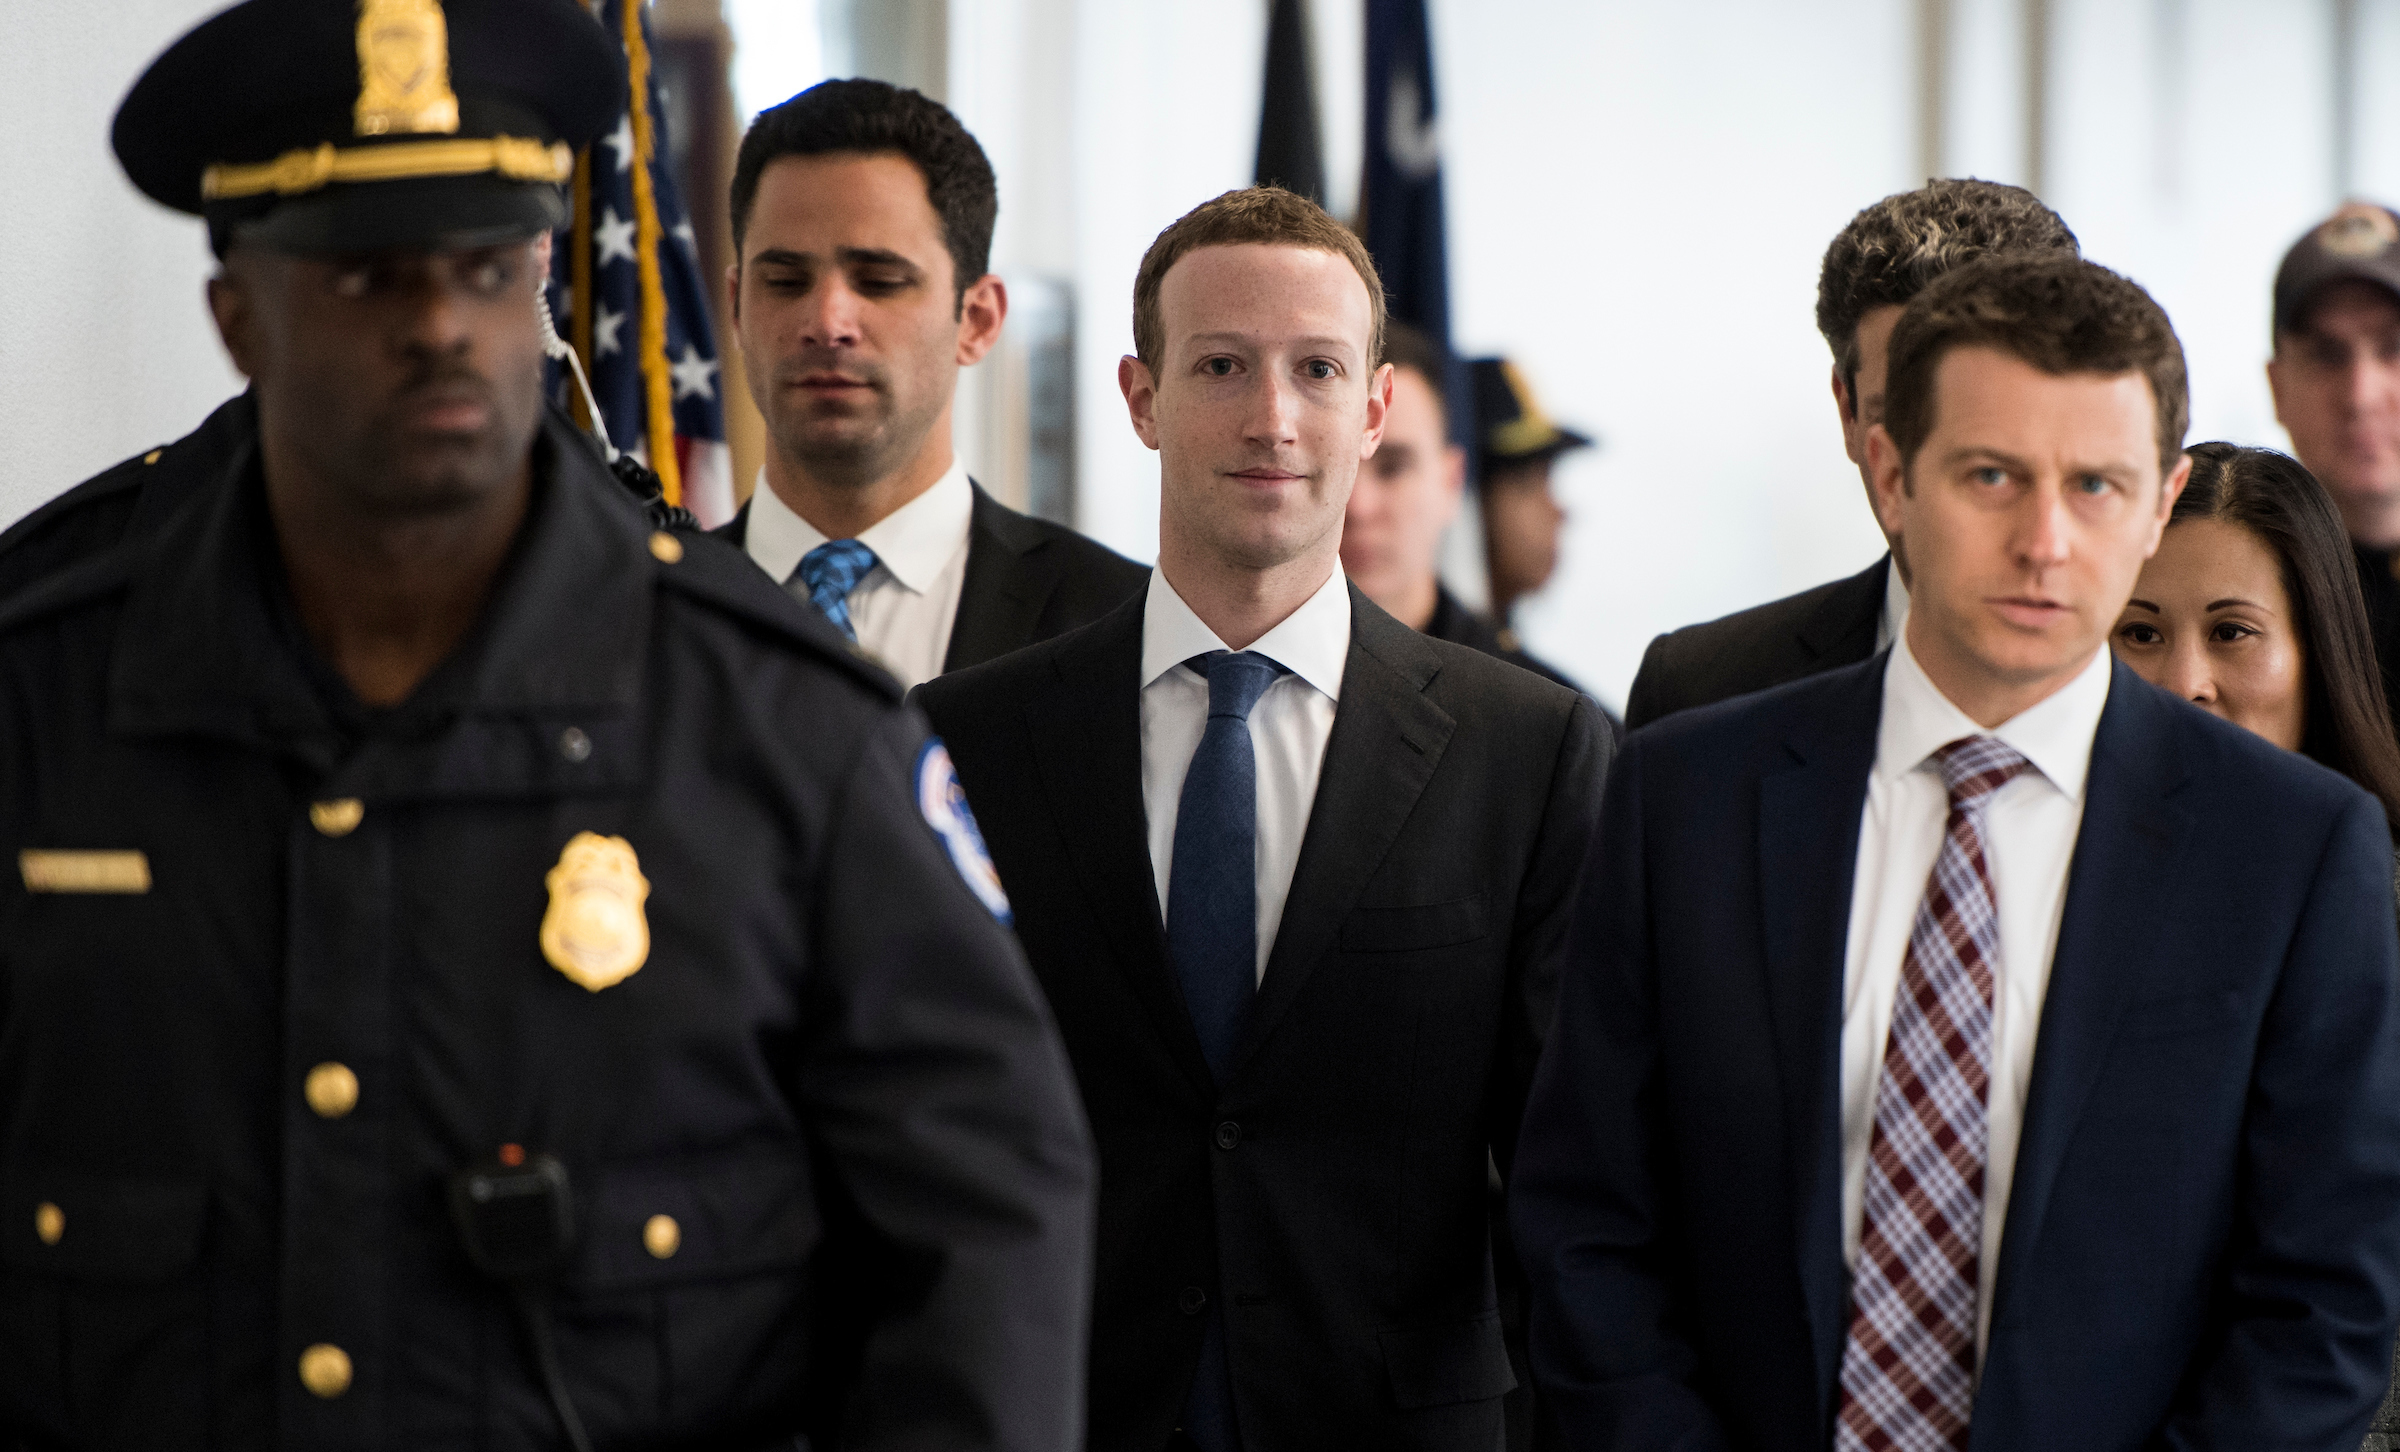 UNITED STATES - APRIL 9: Facebook CEO Mark Zuckerberg arrives for his meeting with Sen. Bill Nelson, D-Fla., in the Hart Senate Office Building on Monday, April 9, 2018. Zuckerberg is on Capitol Hill to testify before the House and Senate this week. (Photo By Bill Clark/CQ Roll Call)